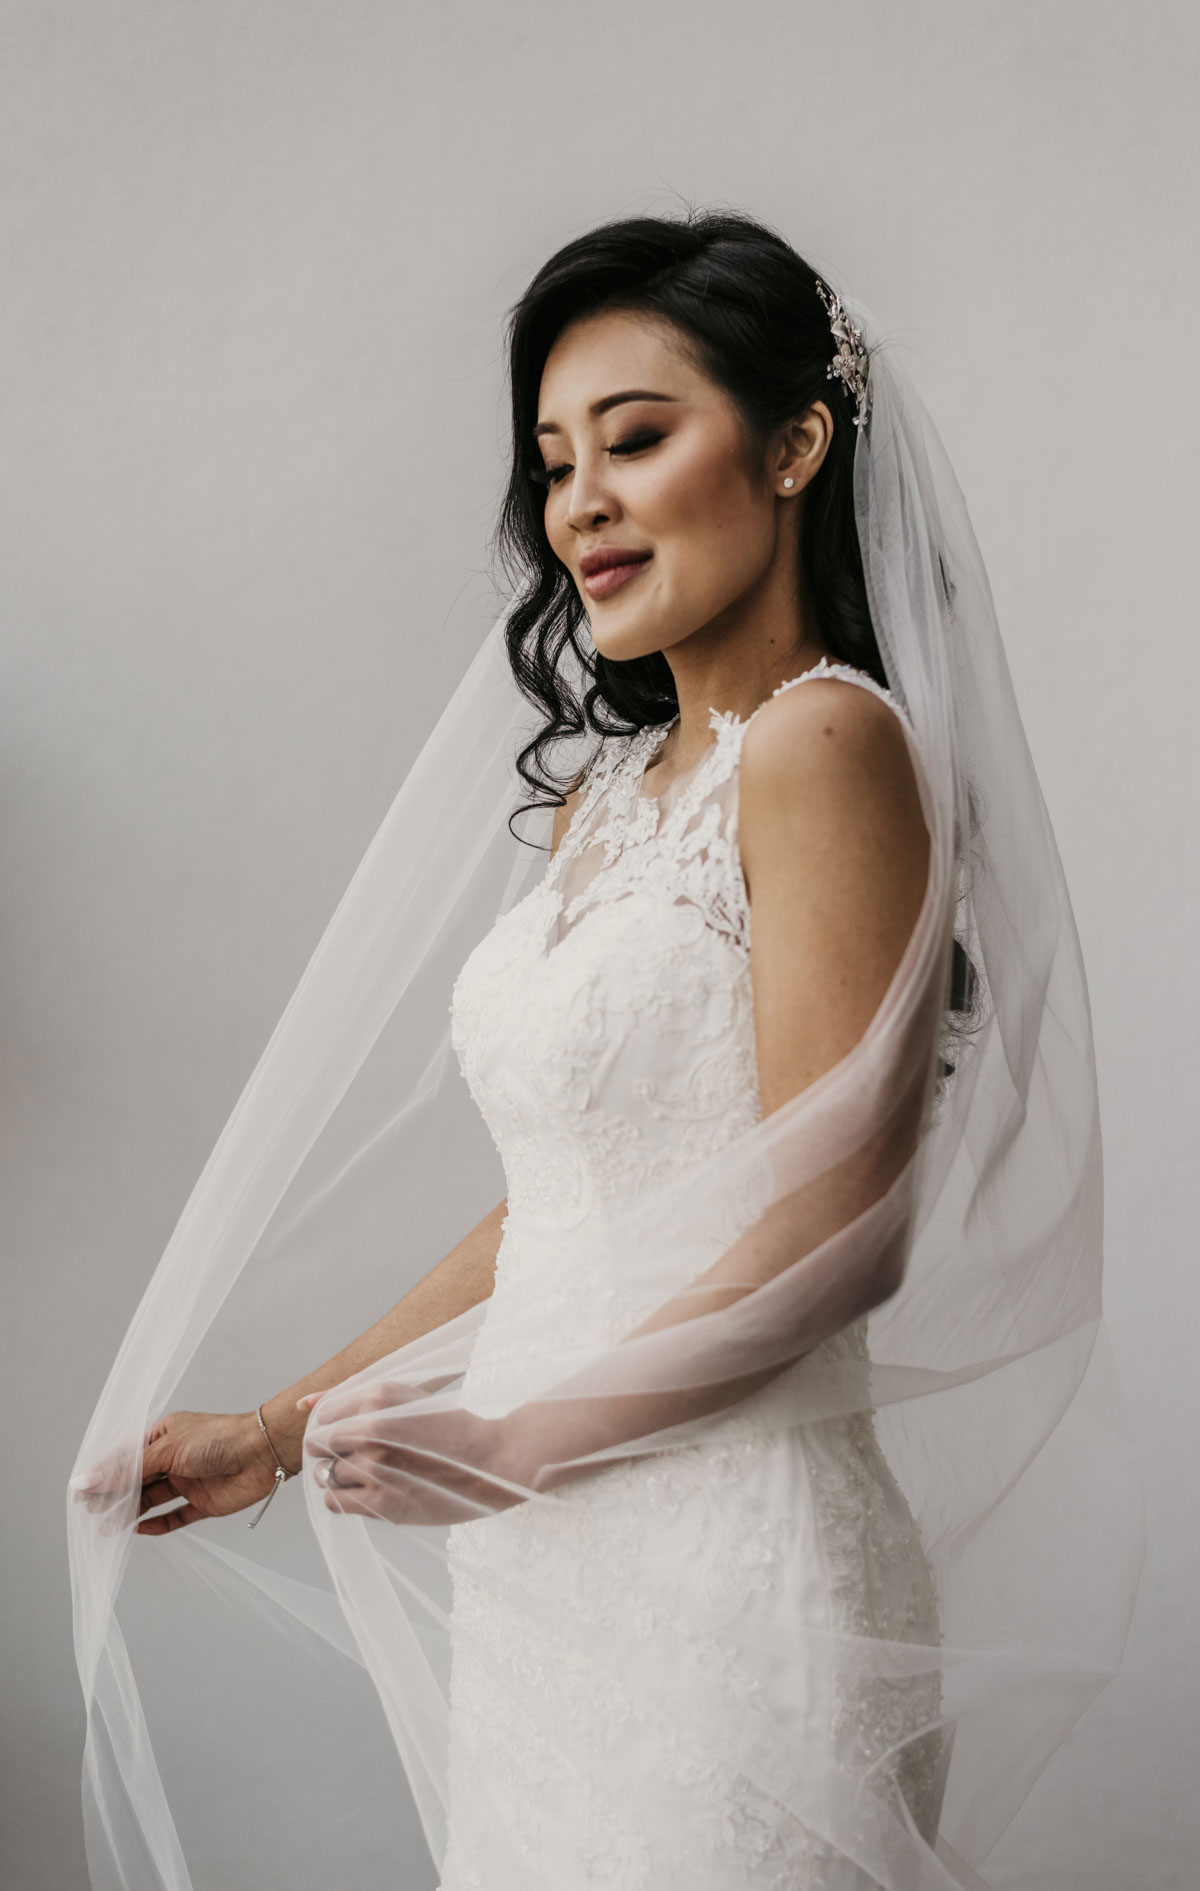 Shay's bridal gown was classy, modern and fitted. She opted for the mermaid cut, with a the most ethereal veil.